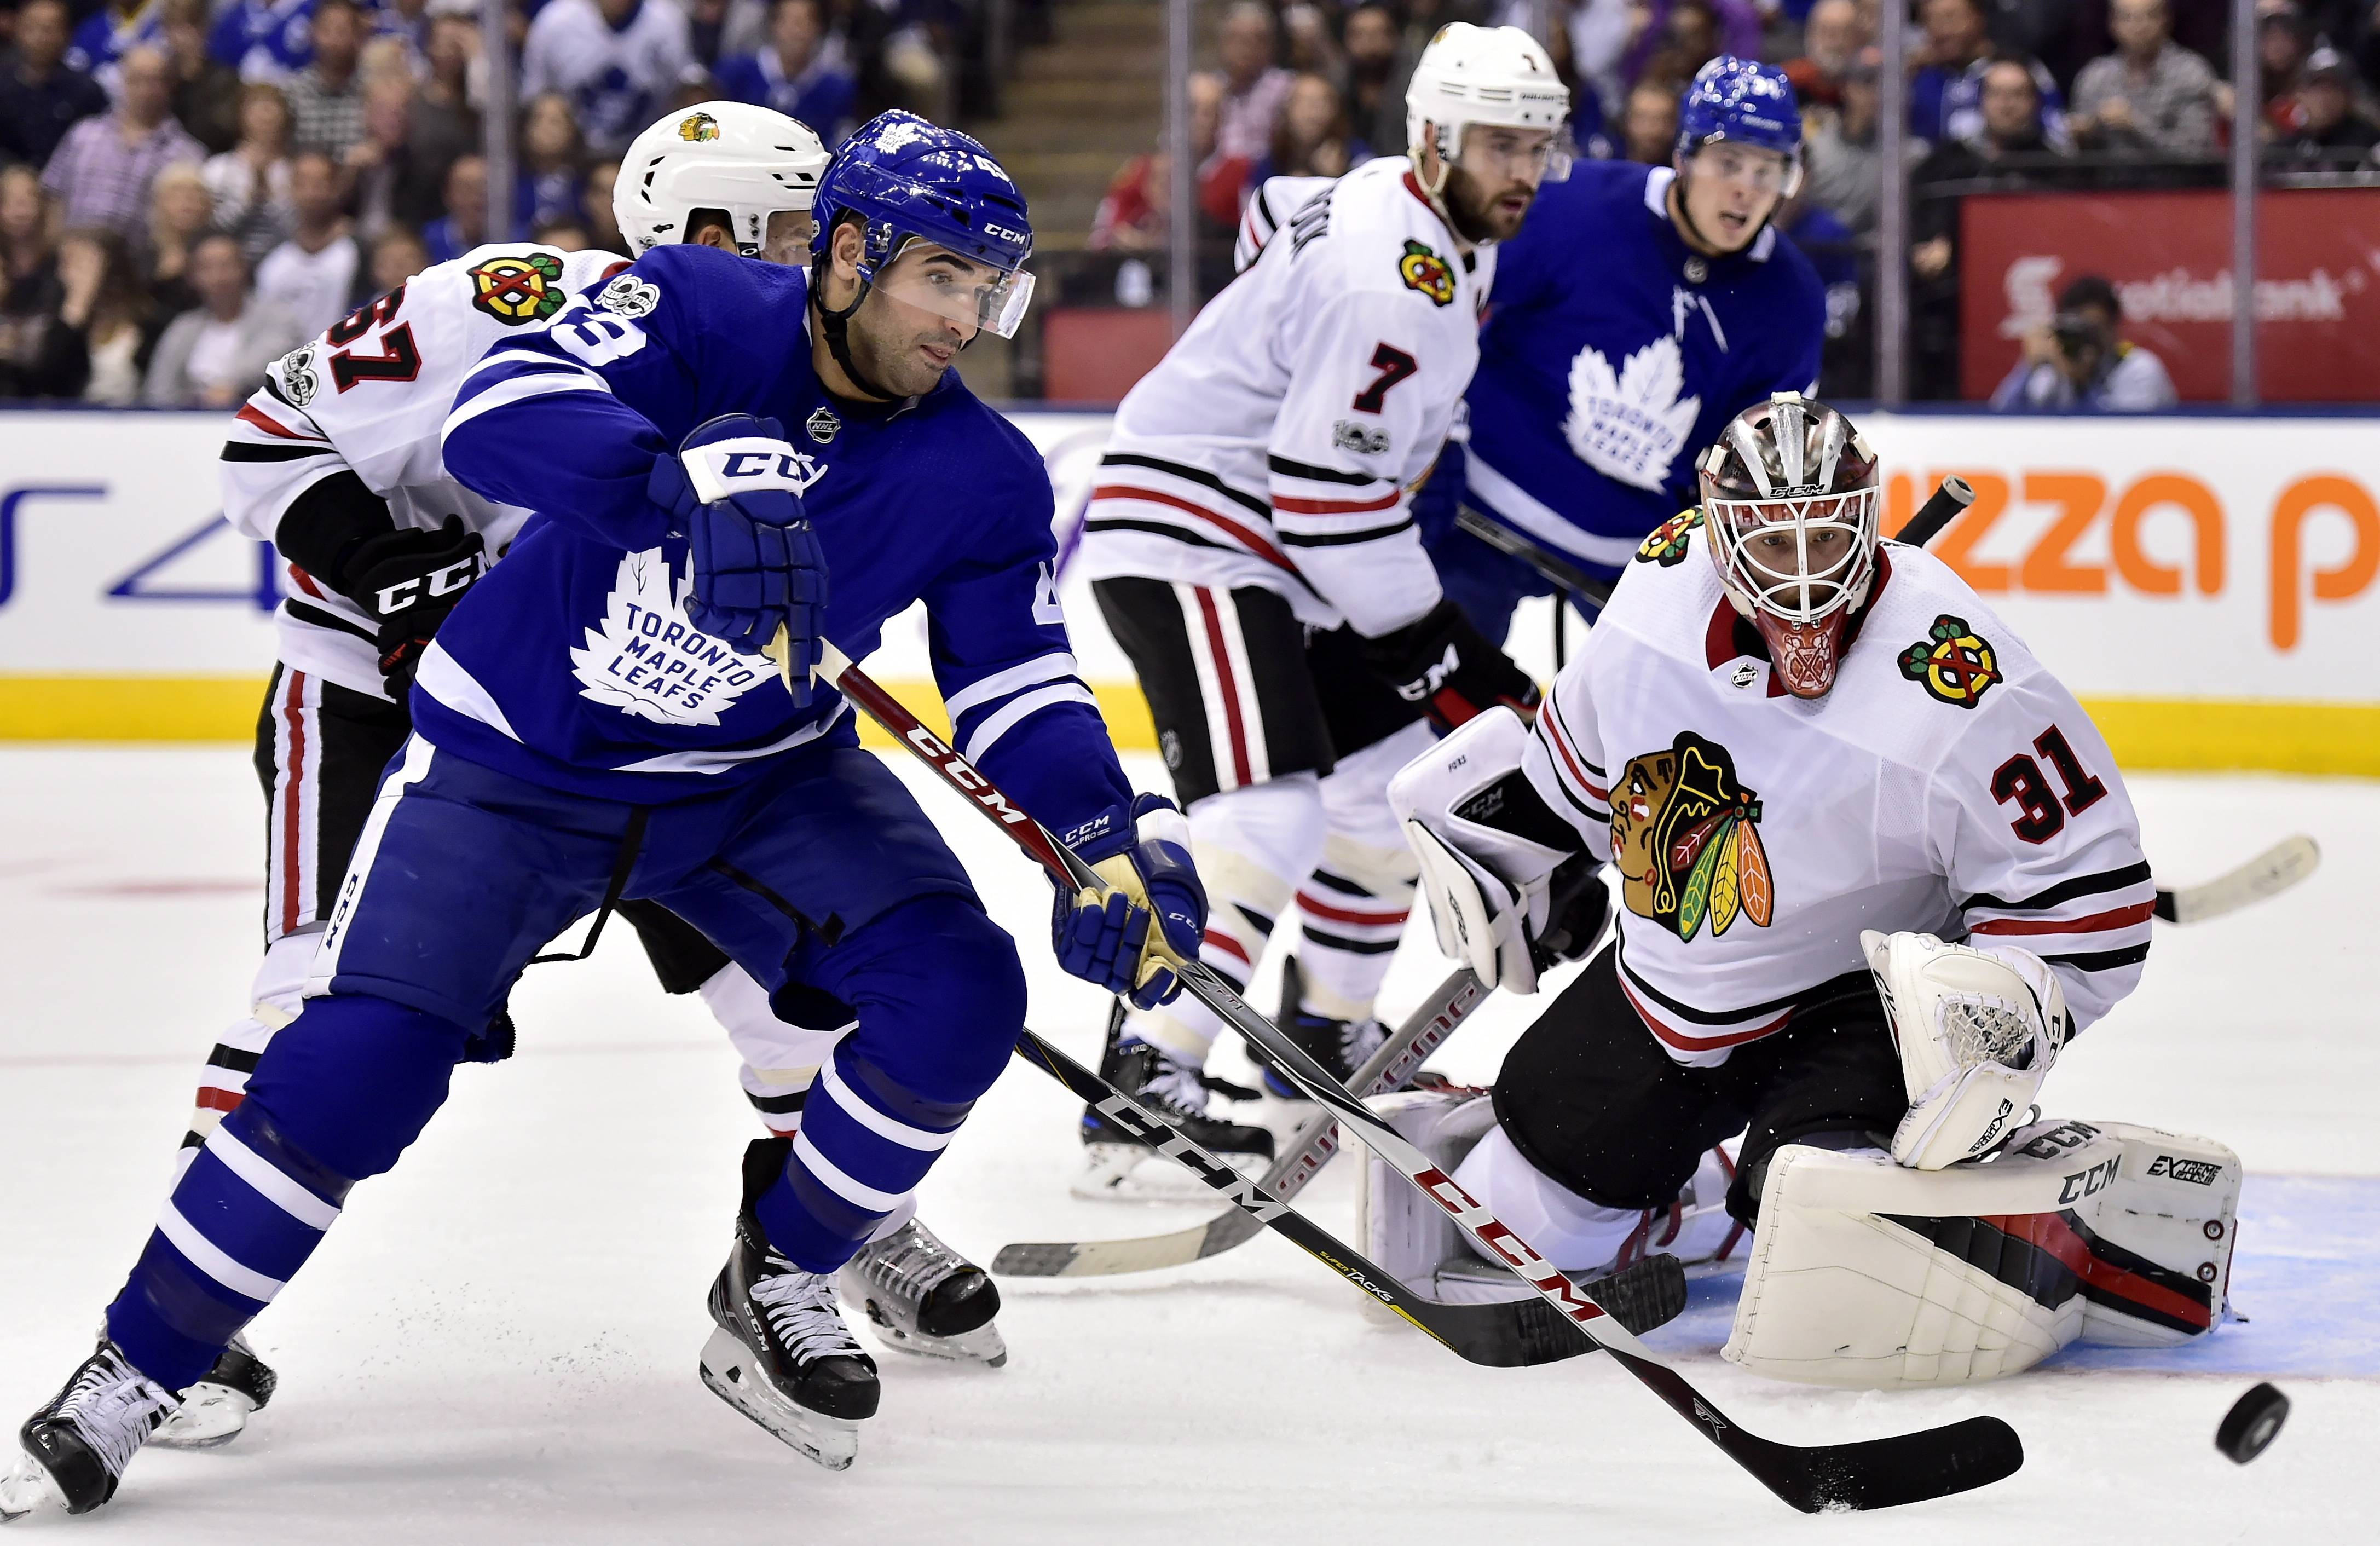 Chicago Blackhawks goalie Anton Forsberg (31) looks on as Toronto Maple Leafs center Nazem Kadri (43) chases the puck during the second period of an NHL hockey game in Toronto on Monday, Oct. 9, 2017.